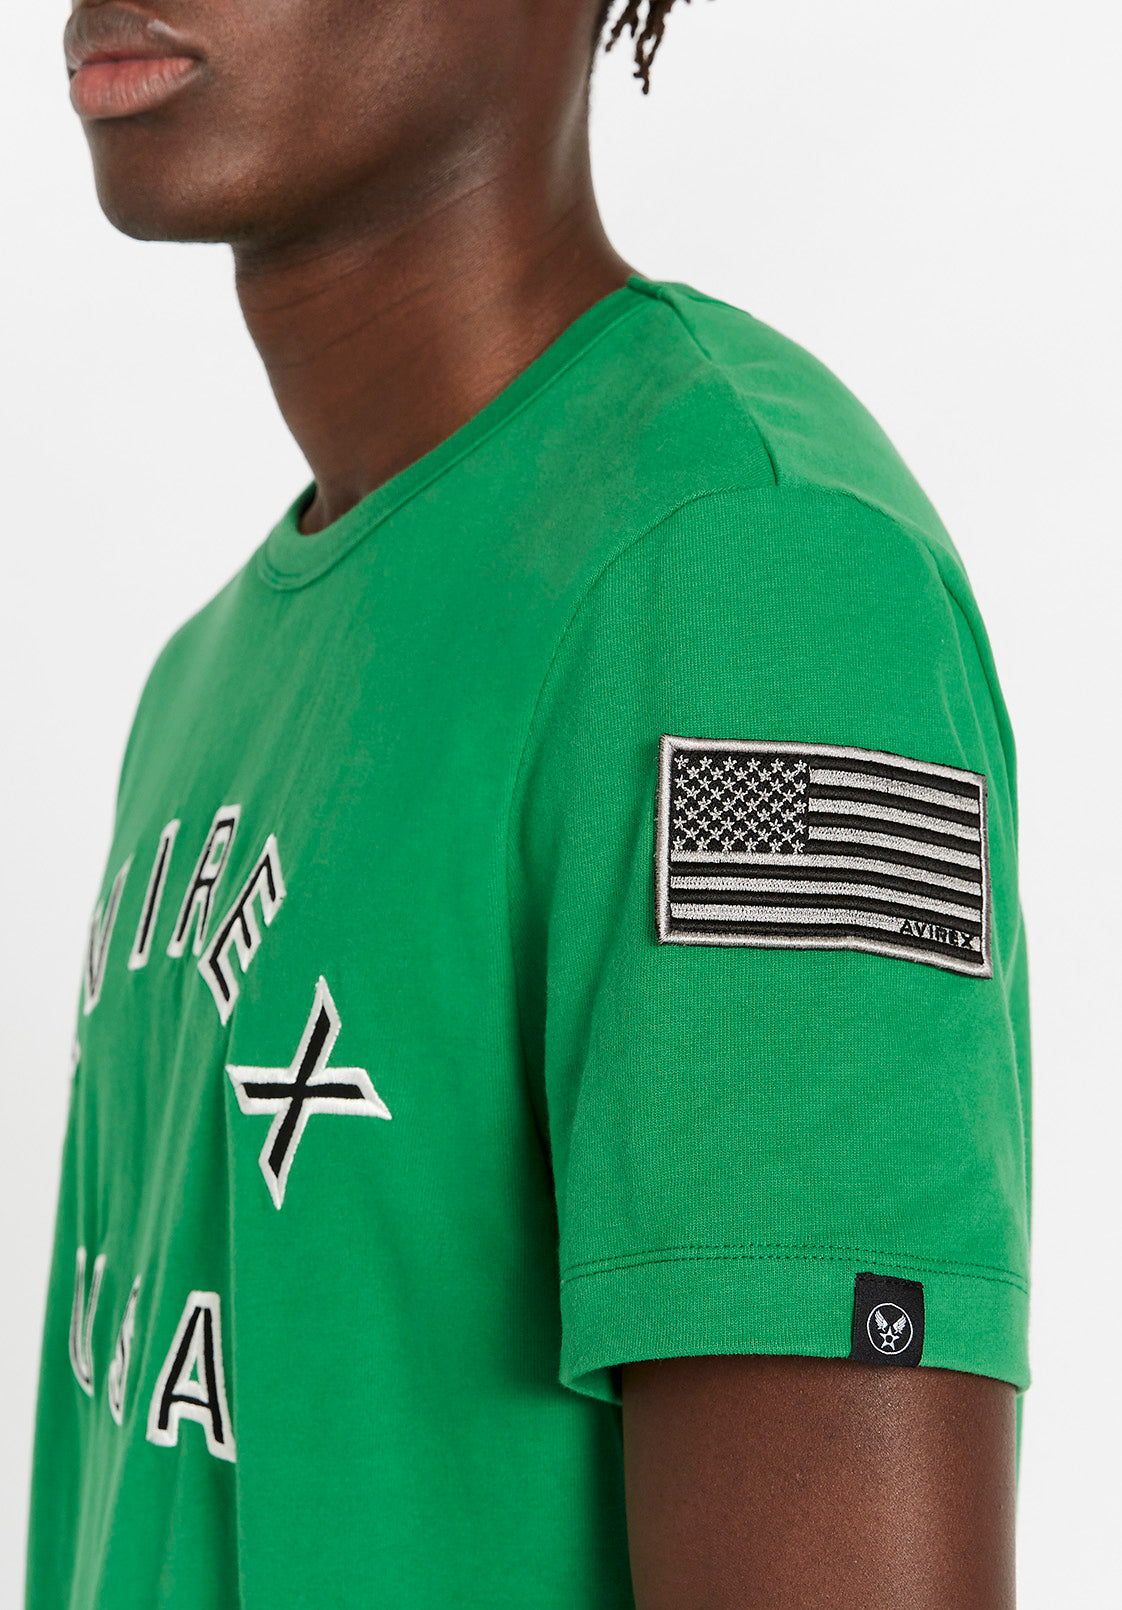 Detailed view of USA flag & Winstar embroidery patches on green t-shirt